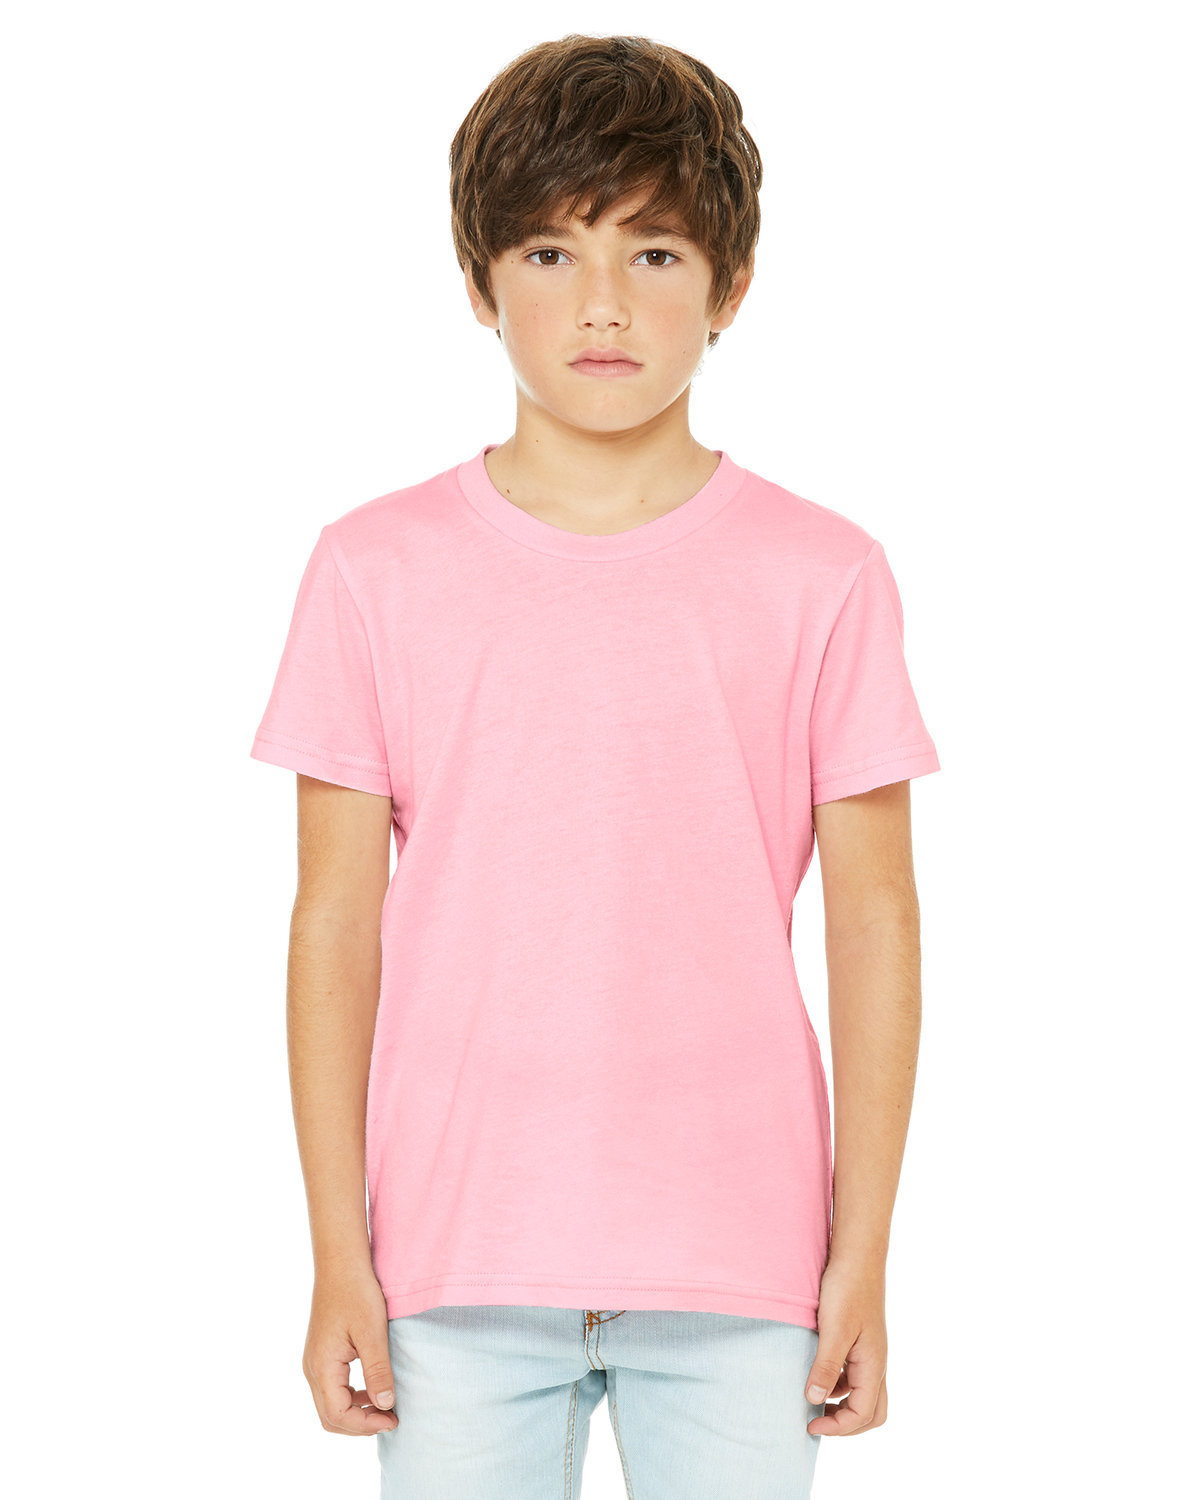 Bella + Canvas Youth Jersey T-Shirt PINK